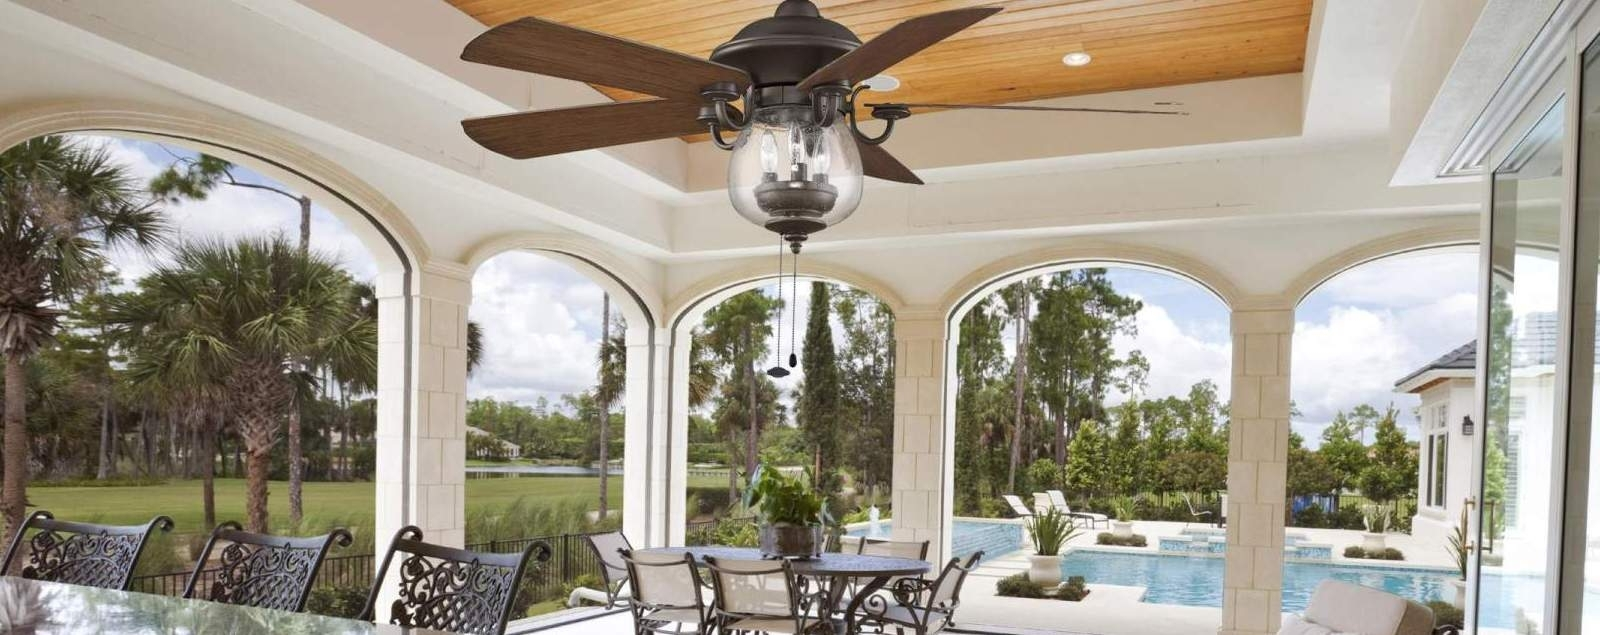 High Volume Outdoor Ceiling Fans Within Popular Outdoor Ceiling Fans – Shop Wet, Dry, And Damp Rated Outdoor Fans (View 15 of 20)